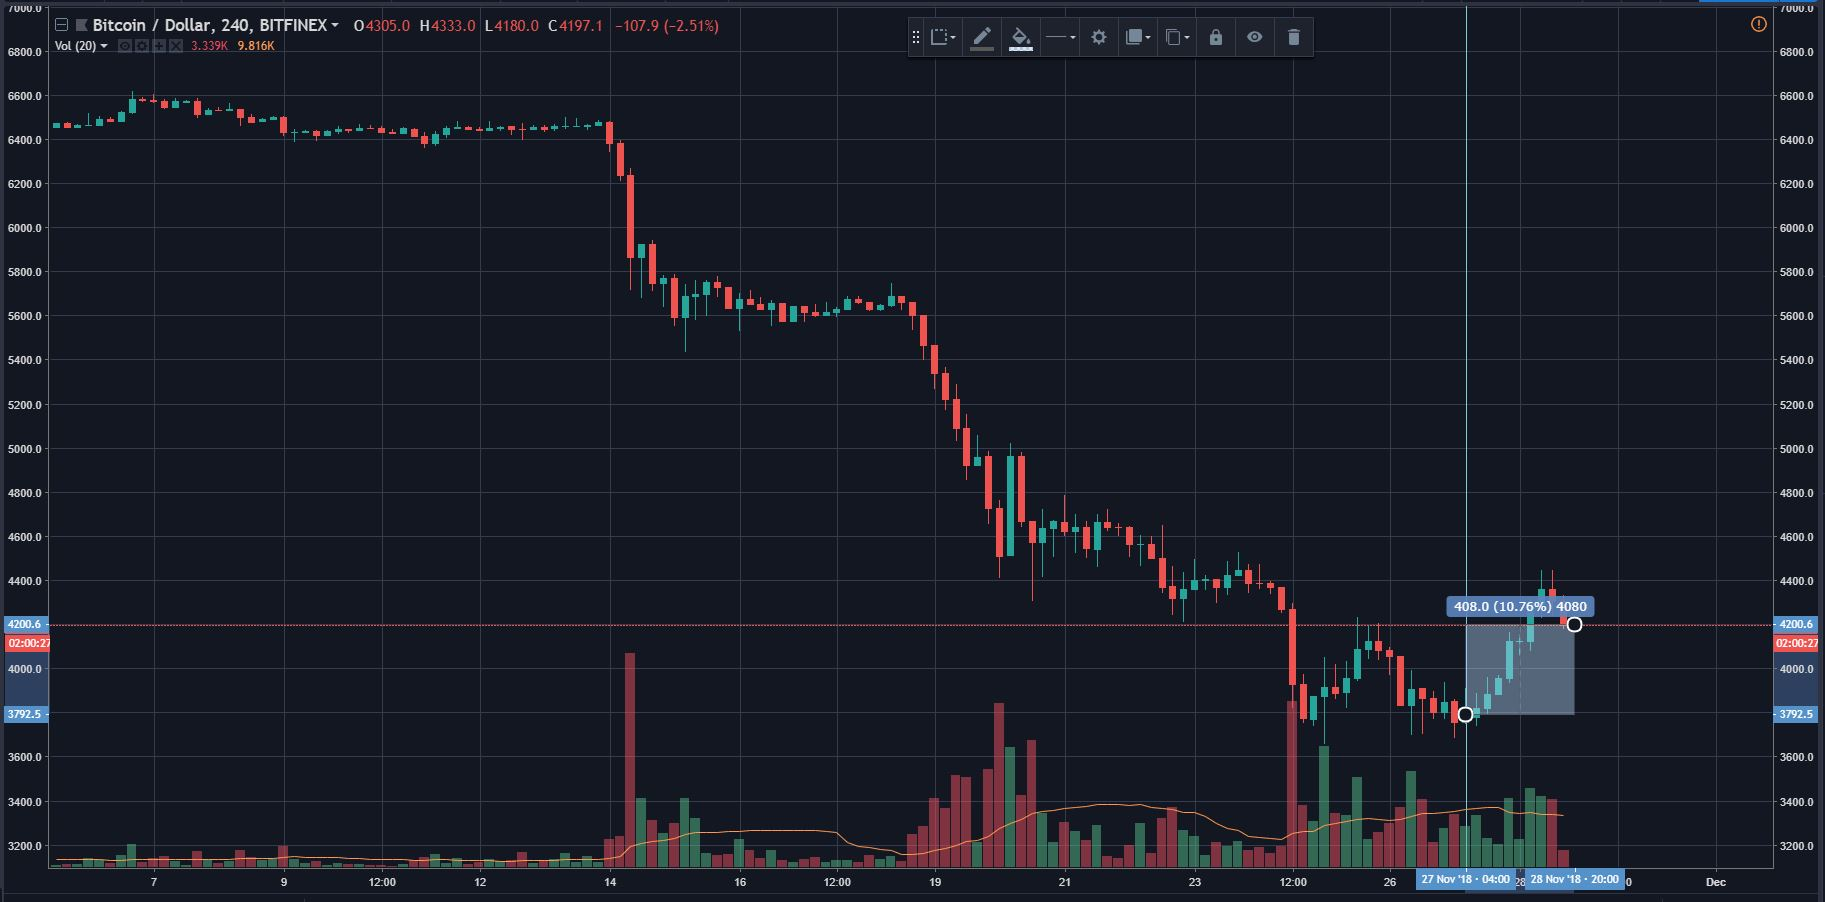 """Bitcoin (BTC) Surges Above $4,000, Analyst Cries """"Dead Cat Bounce"""" 2"""